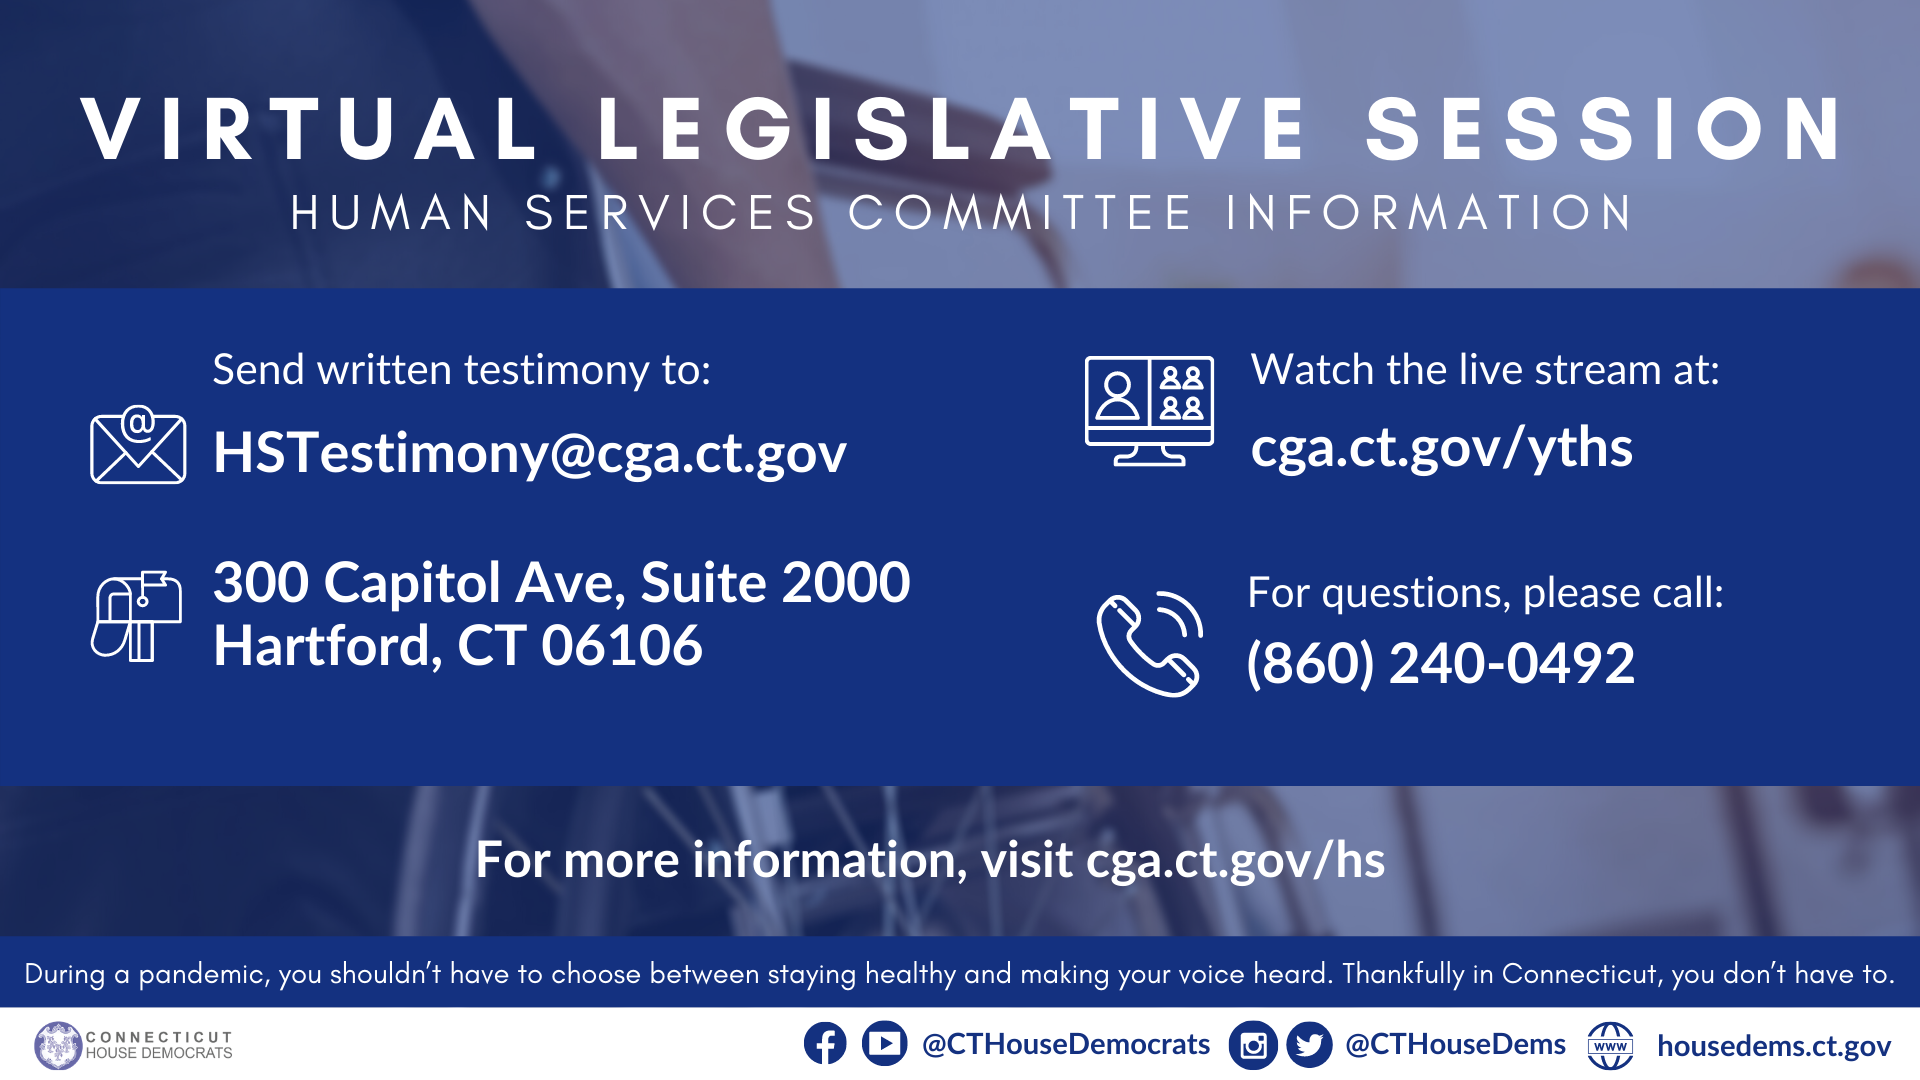 Human Services Committee